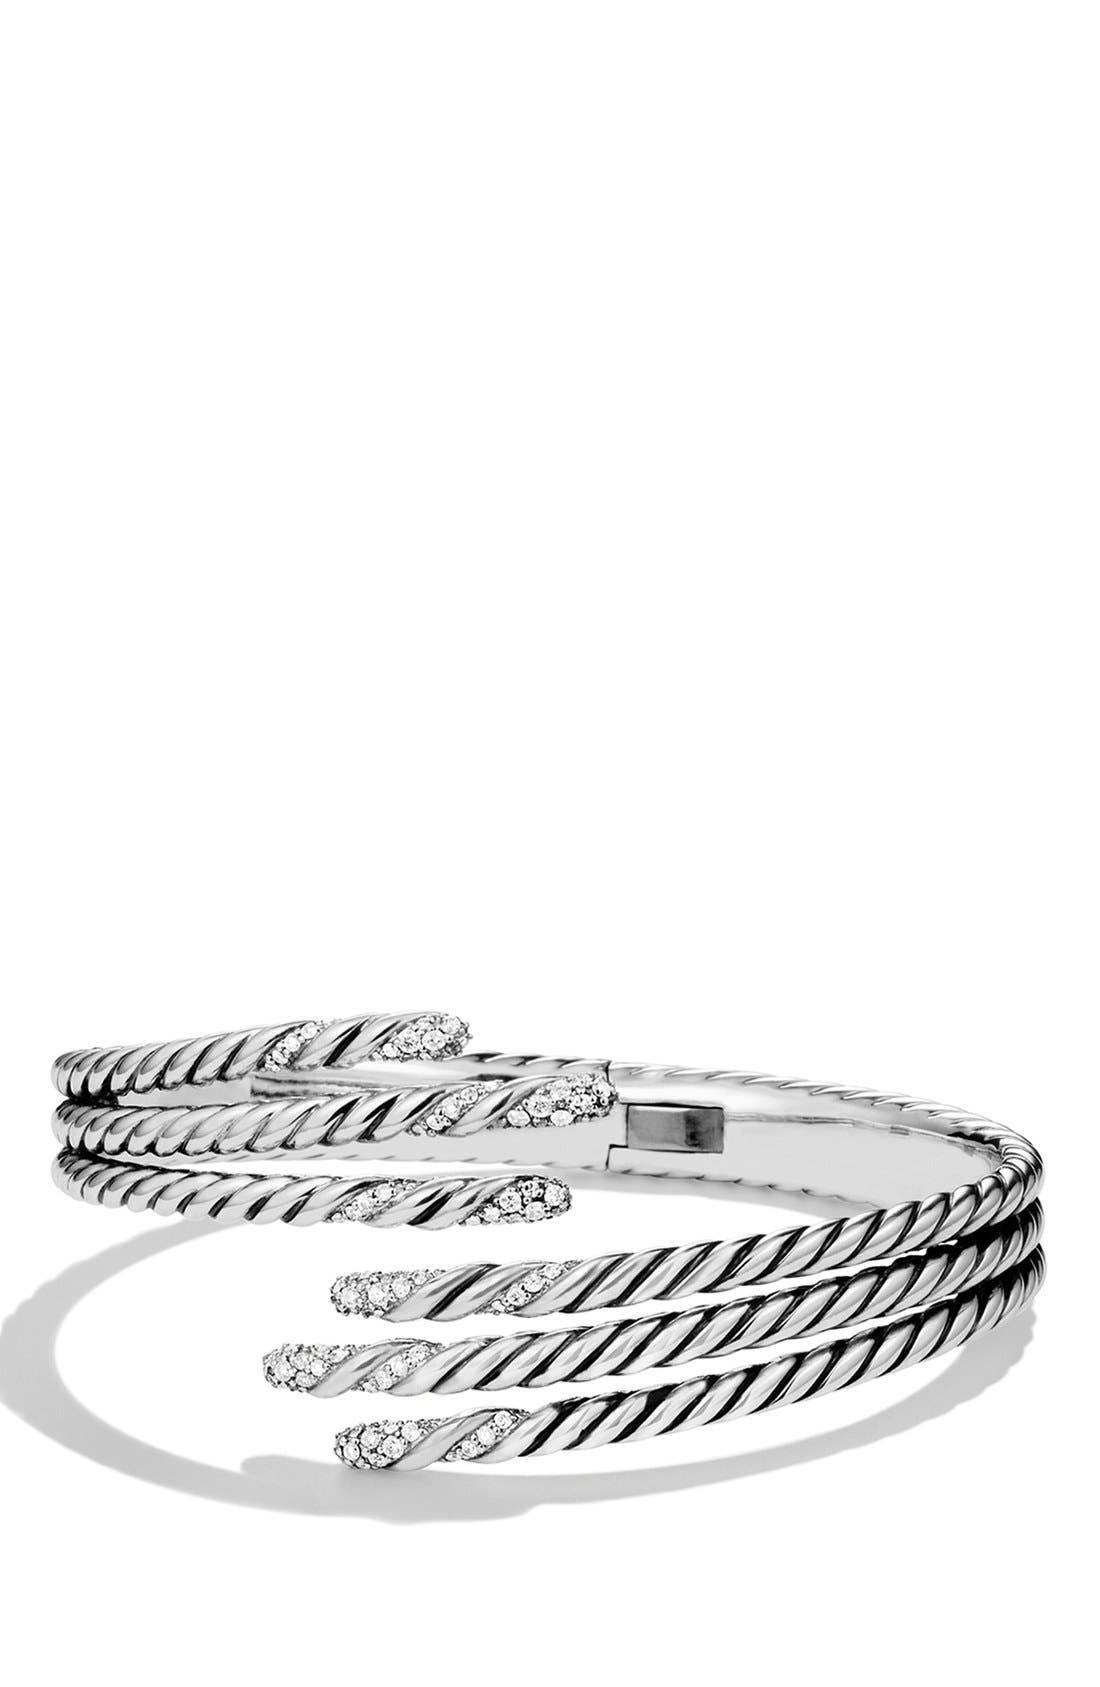 'Willow' Open Three-Row Bracelet with Diamonds,                             Main thumbnail 1, color,                             Diamond